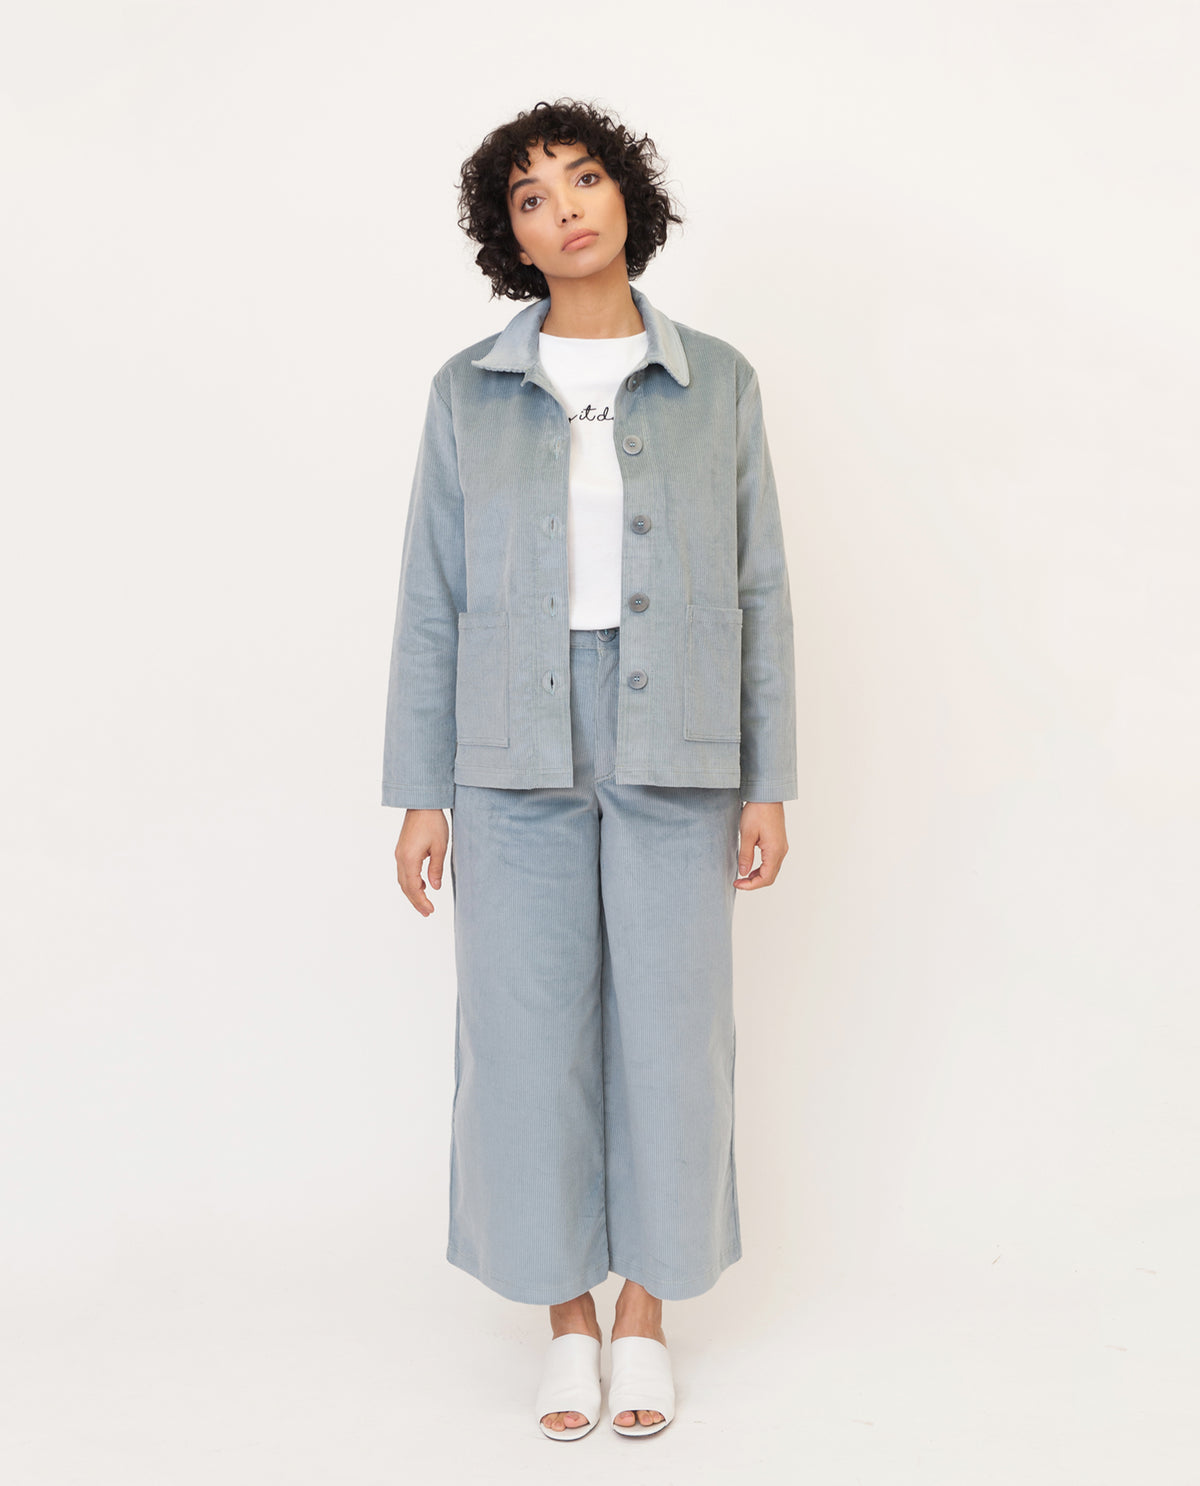 SHARON-ANN Organic Cotton Corduroy Jacket In Sage